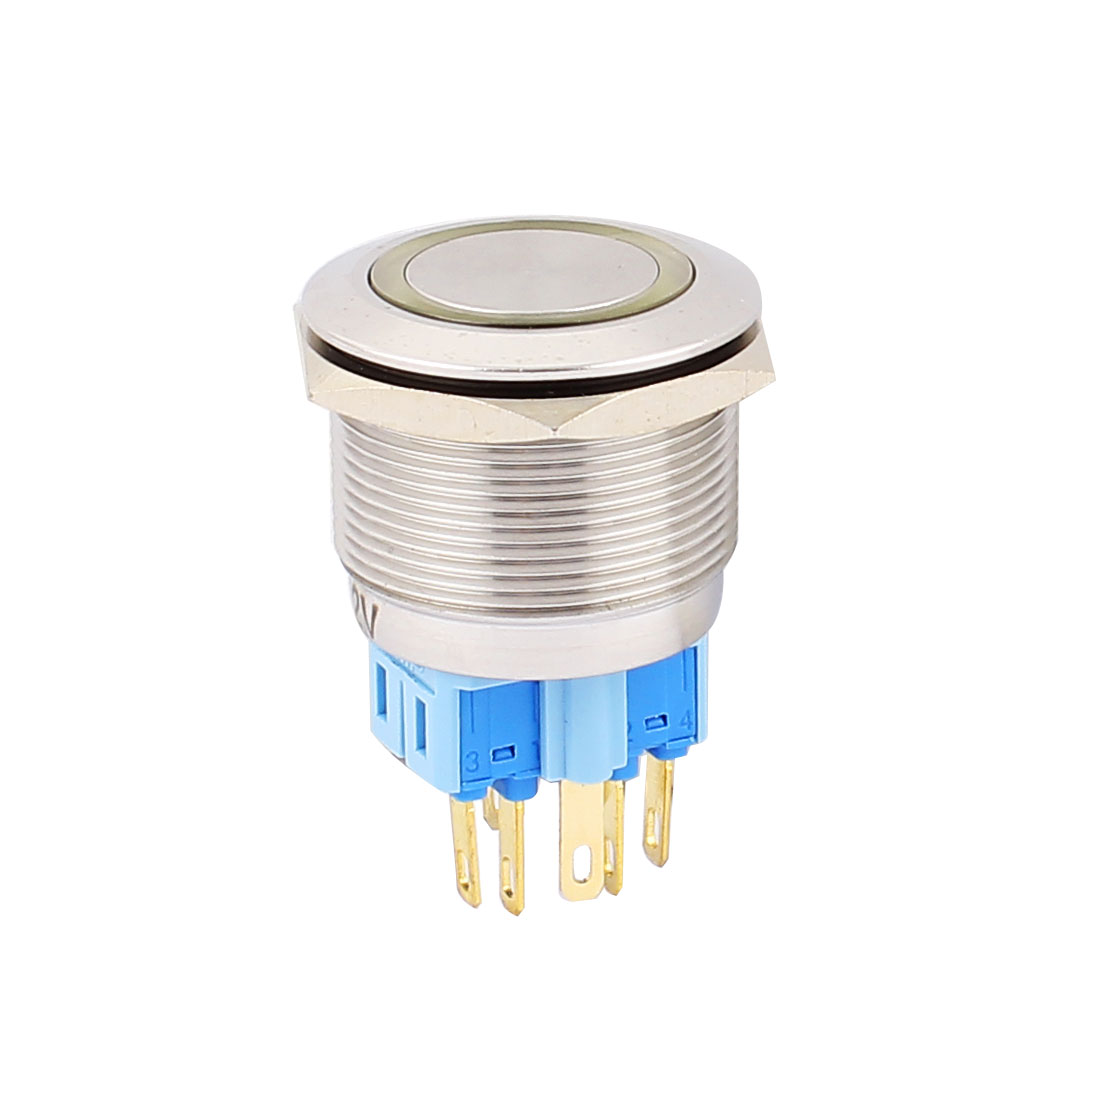 12V 25mm Dia Thread Yellow LED Angle Eyes Momentory Metal Pushbutton Switch